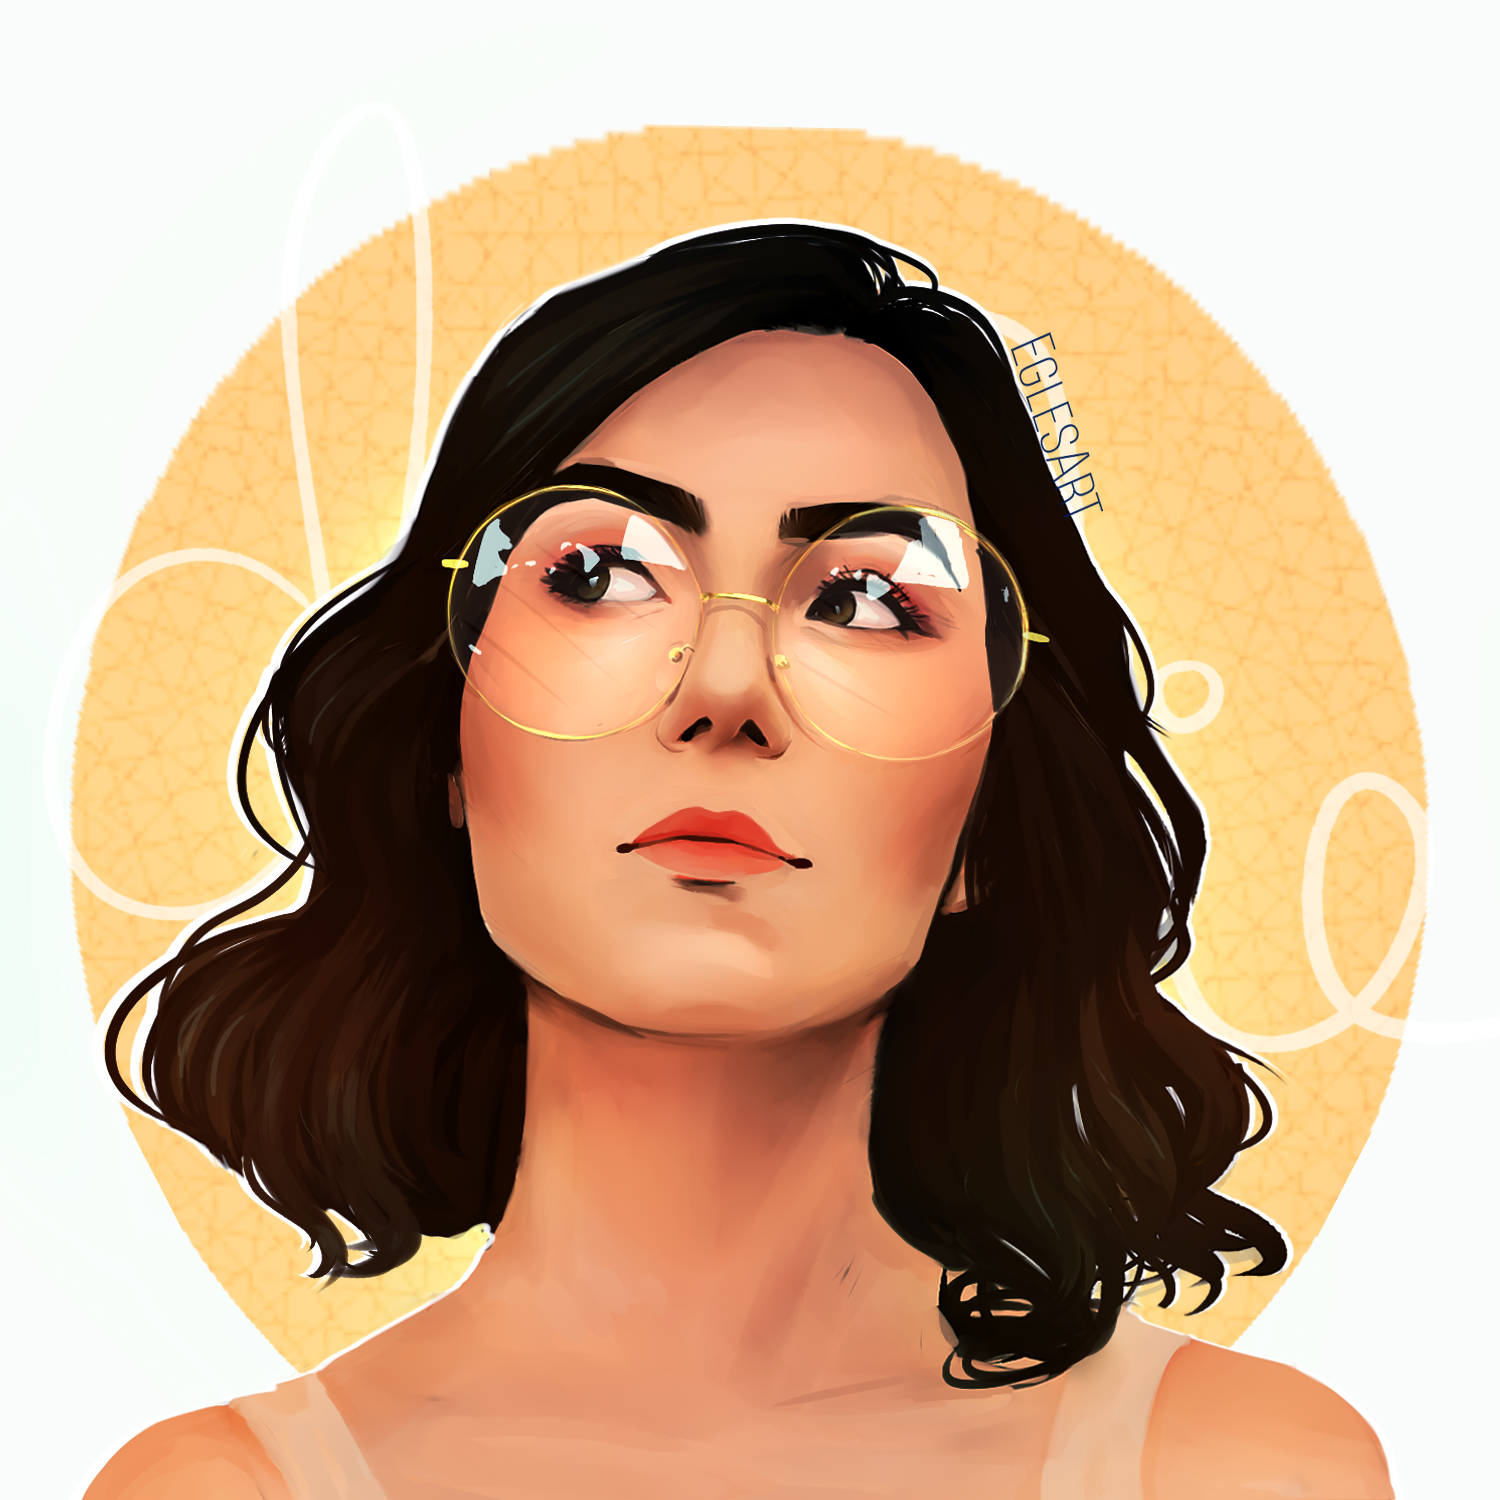 dodie, a drawing by Eggylyte